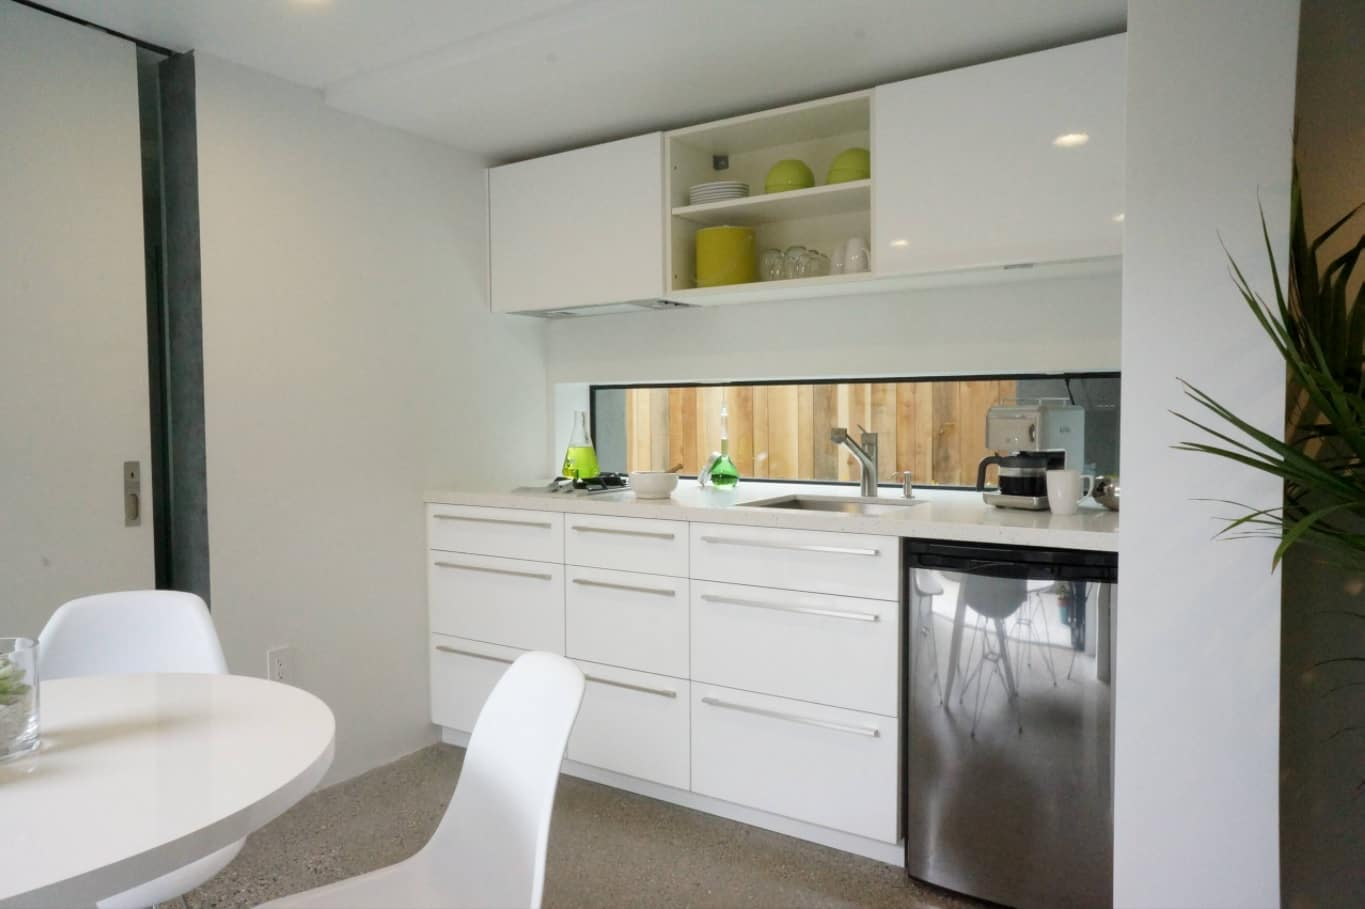 What Separates A Kitchen From A Kitchenette? All-white interior with small improvised kitchen zone and small fridge